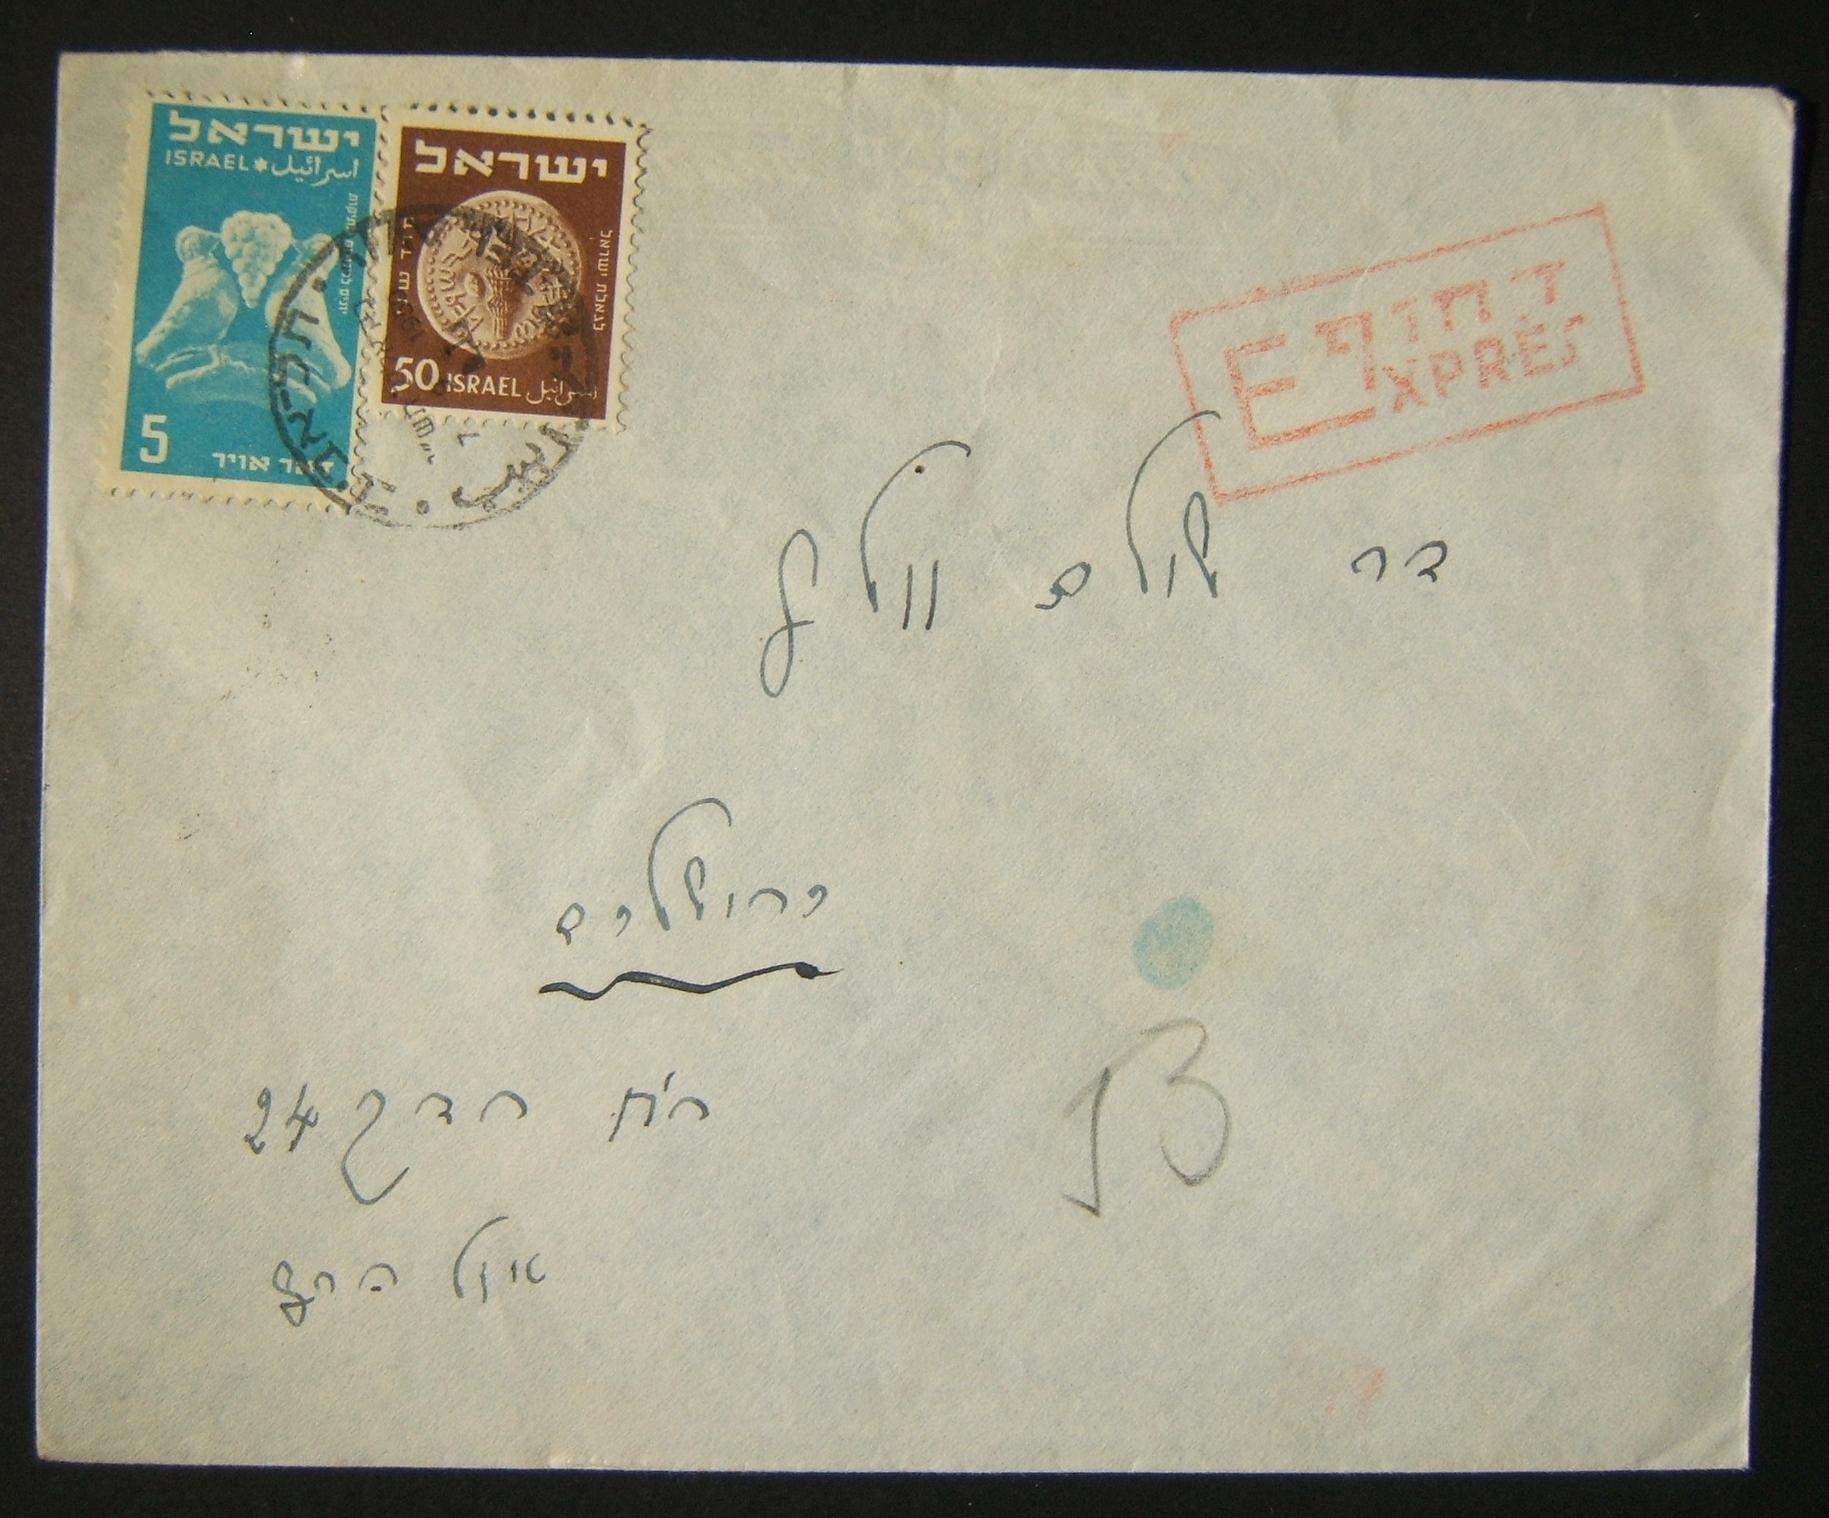 7-9-1950 Tel Aviv to Jerusalem express mail with 1st Airmail & 2nd Coinage franks